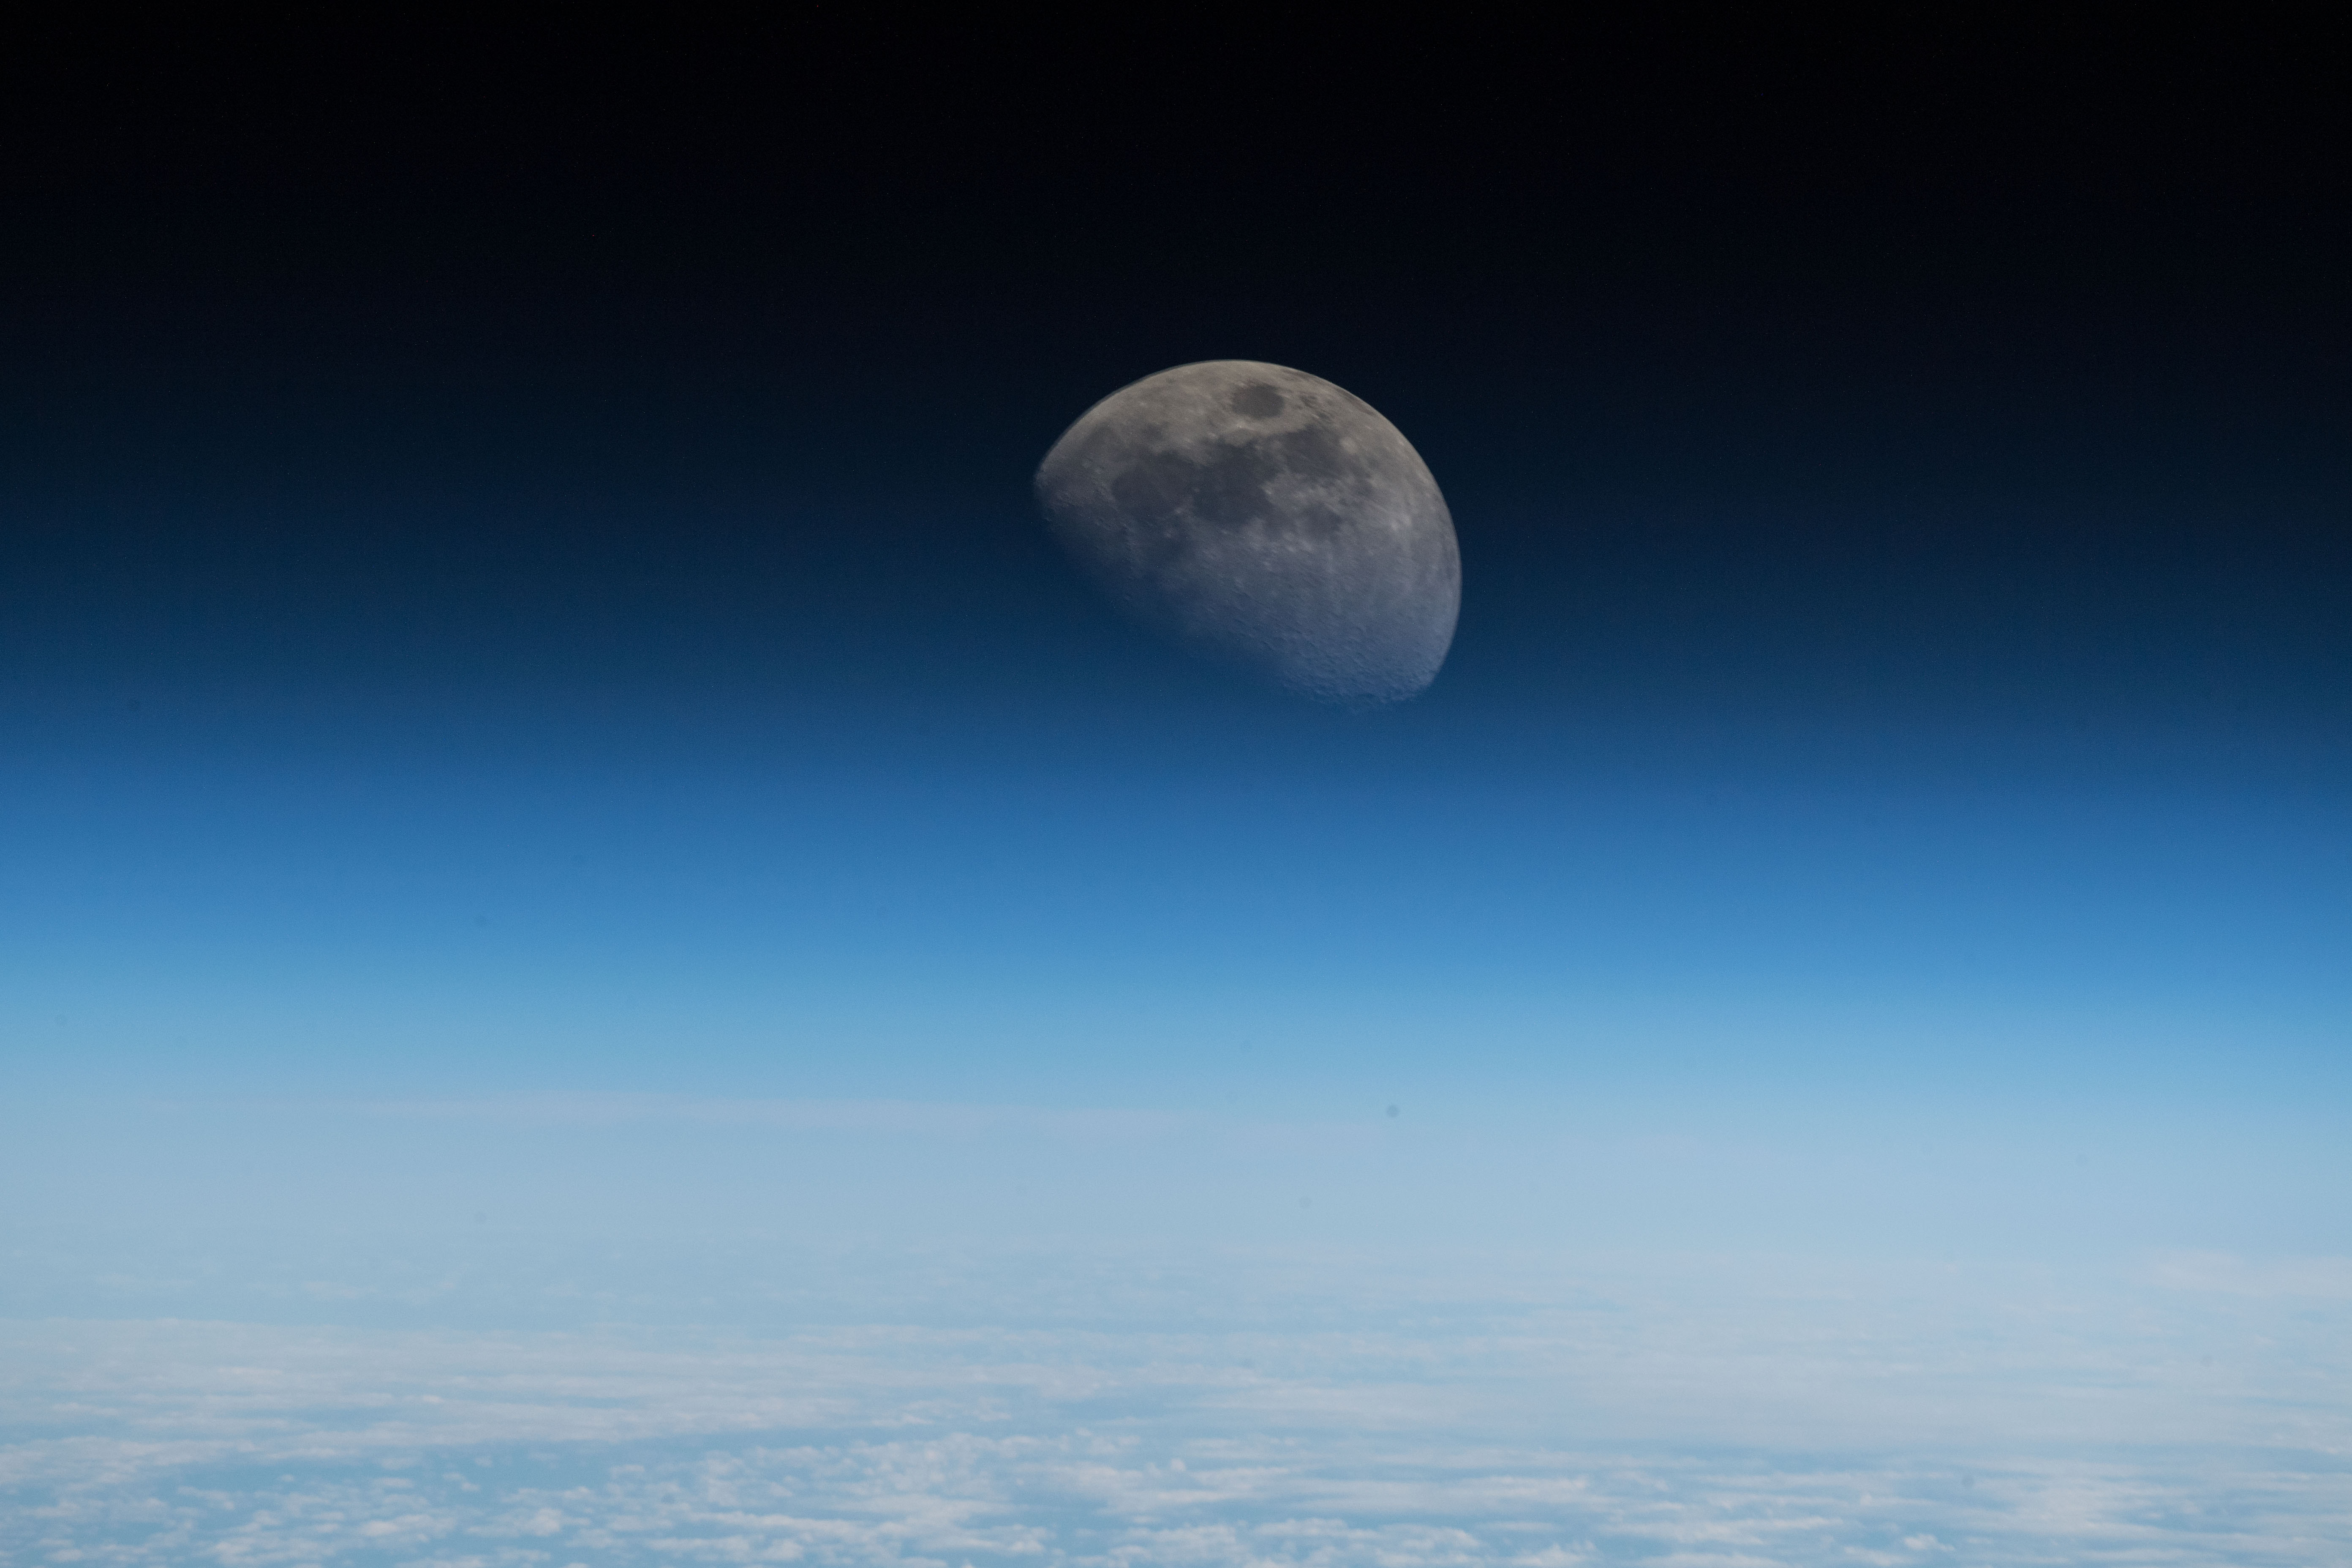 European Space Agency astronaut Alexander Gerst, photographed our planet's Moon as seen from the International Space Station.